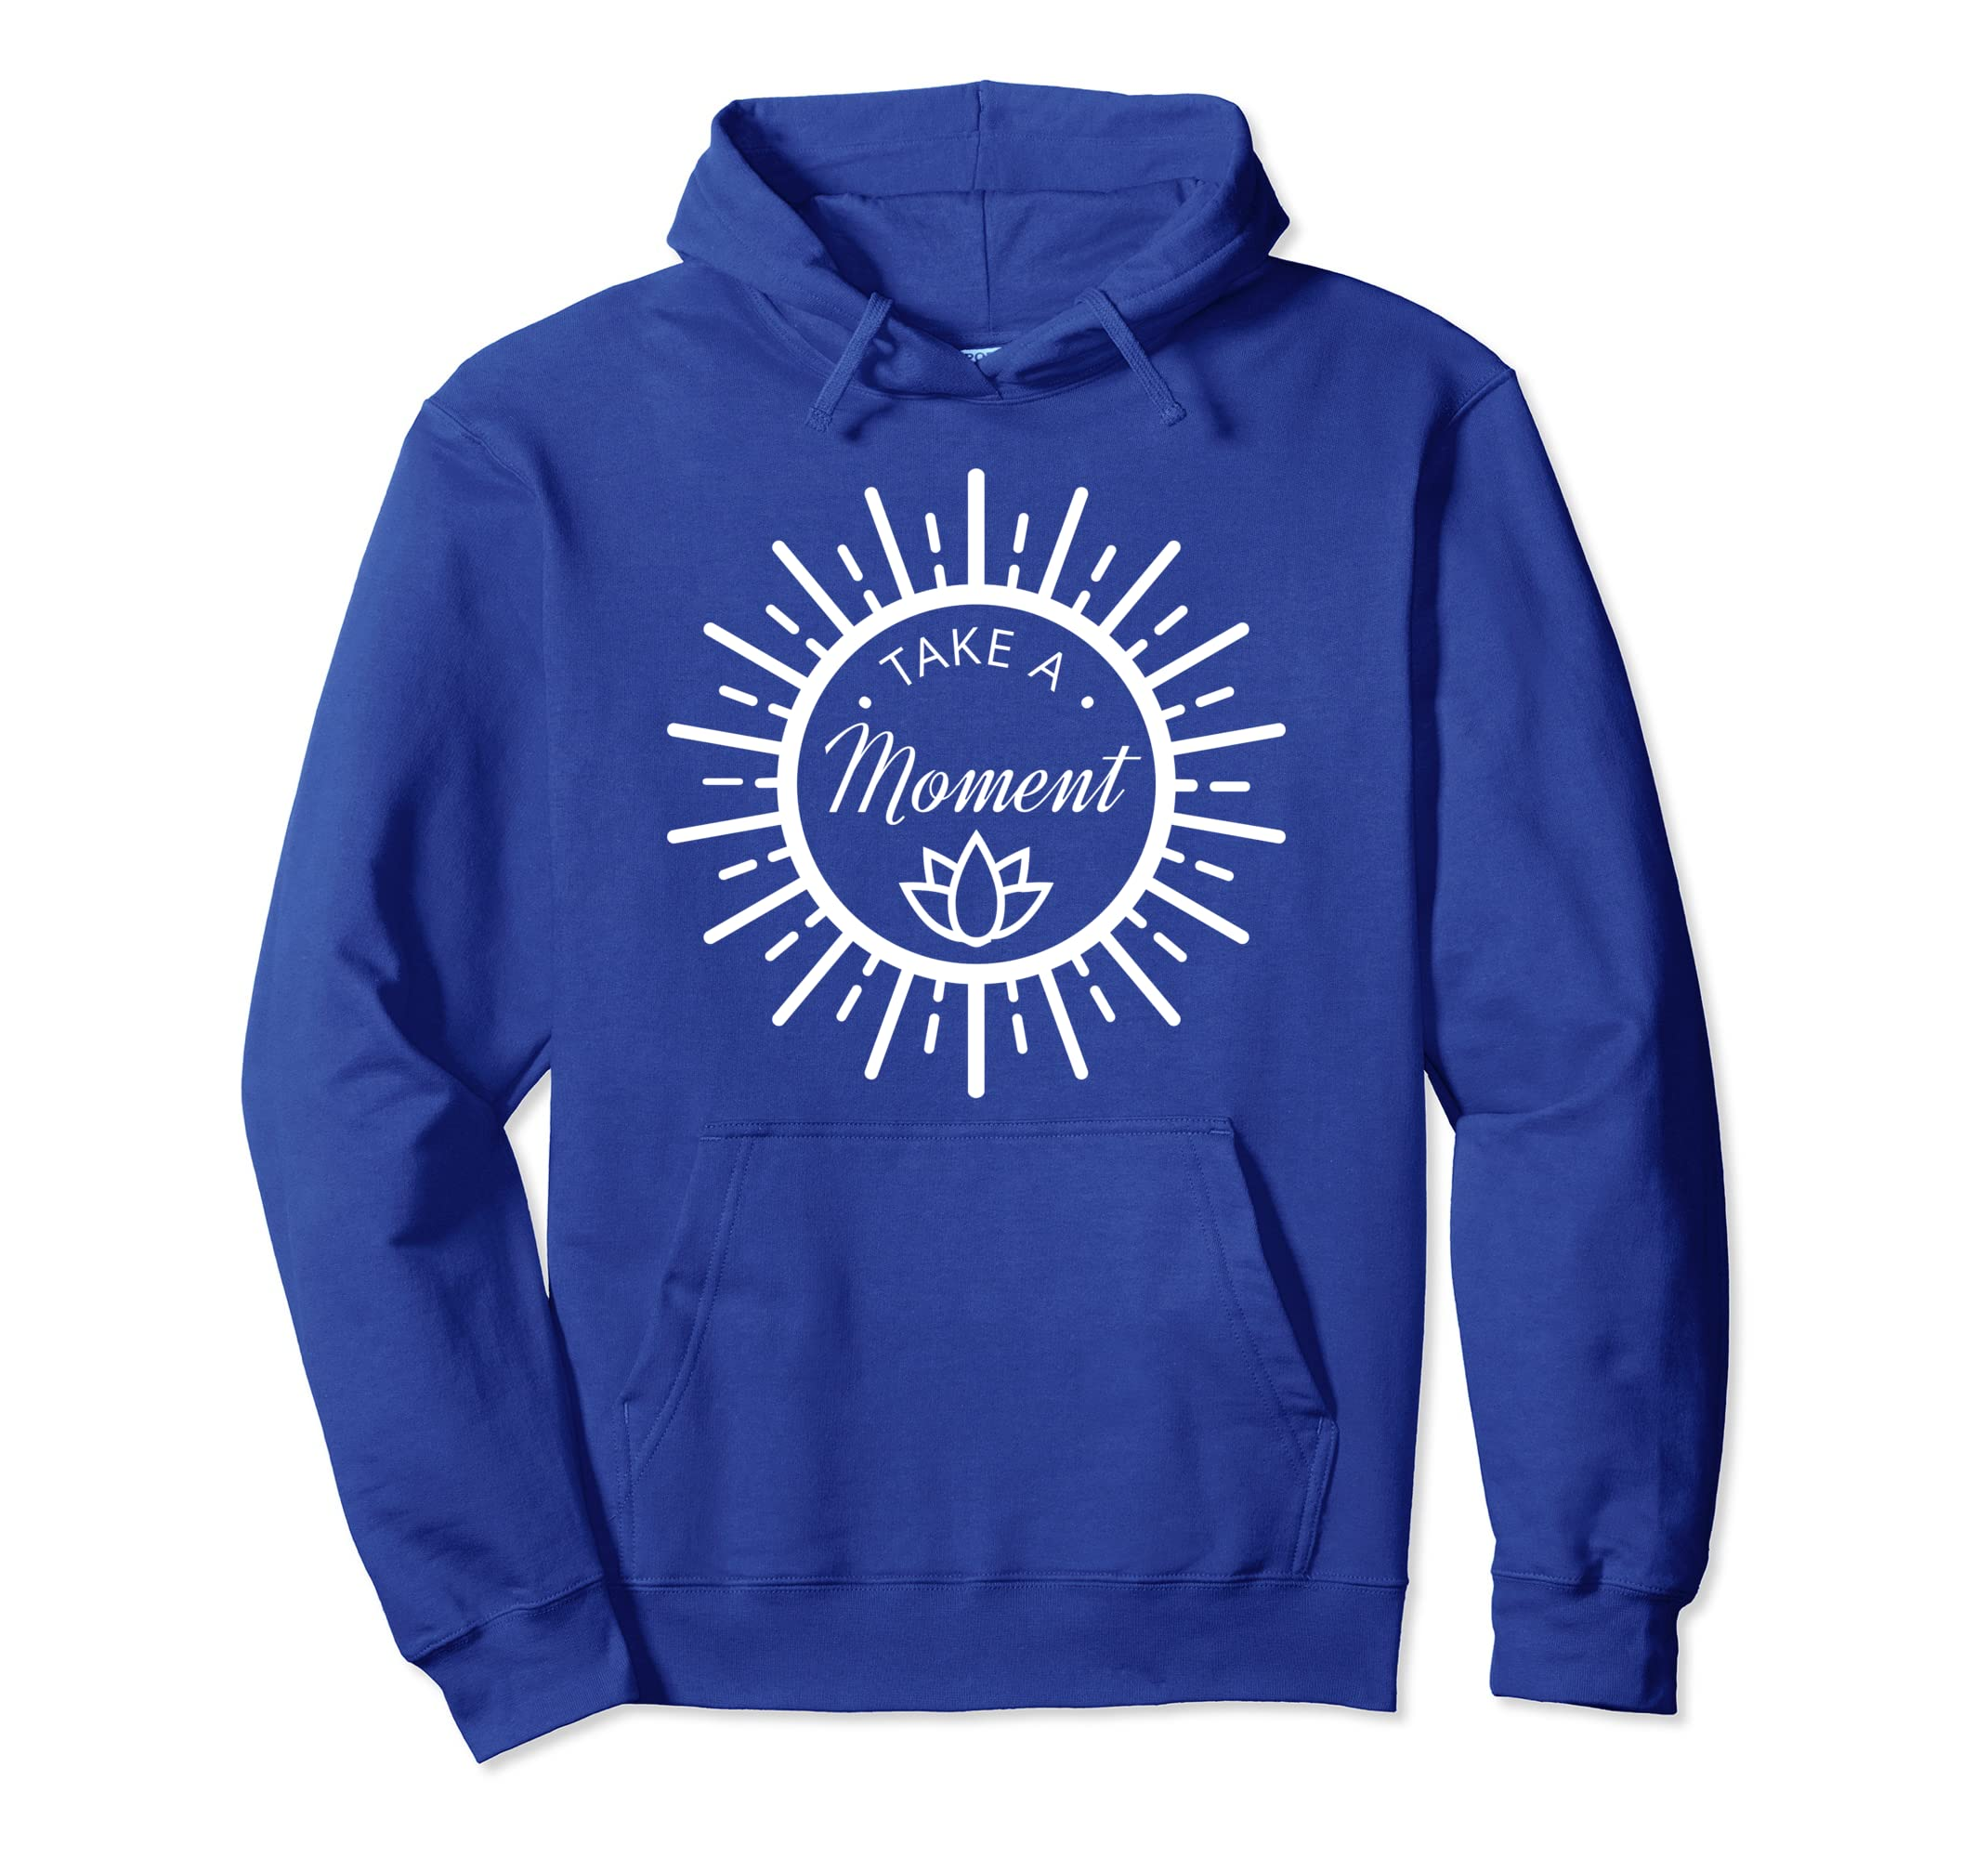 Amazon.com: Take A Moment Yoga and Wellness Pullover Hoodie ...